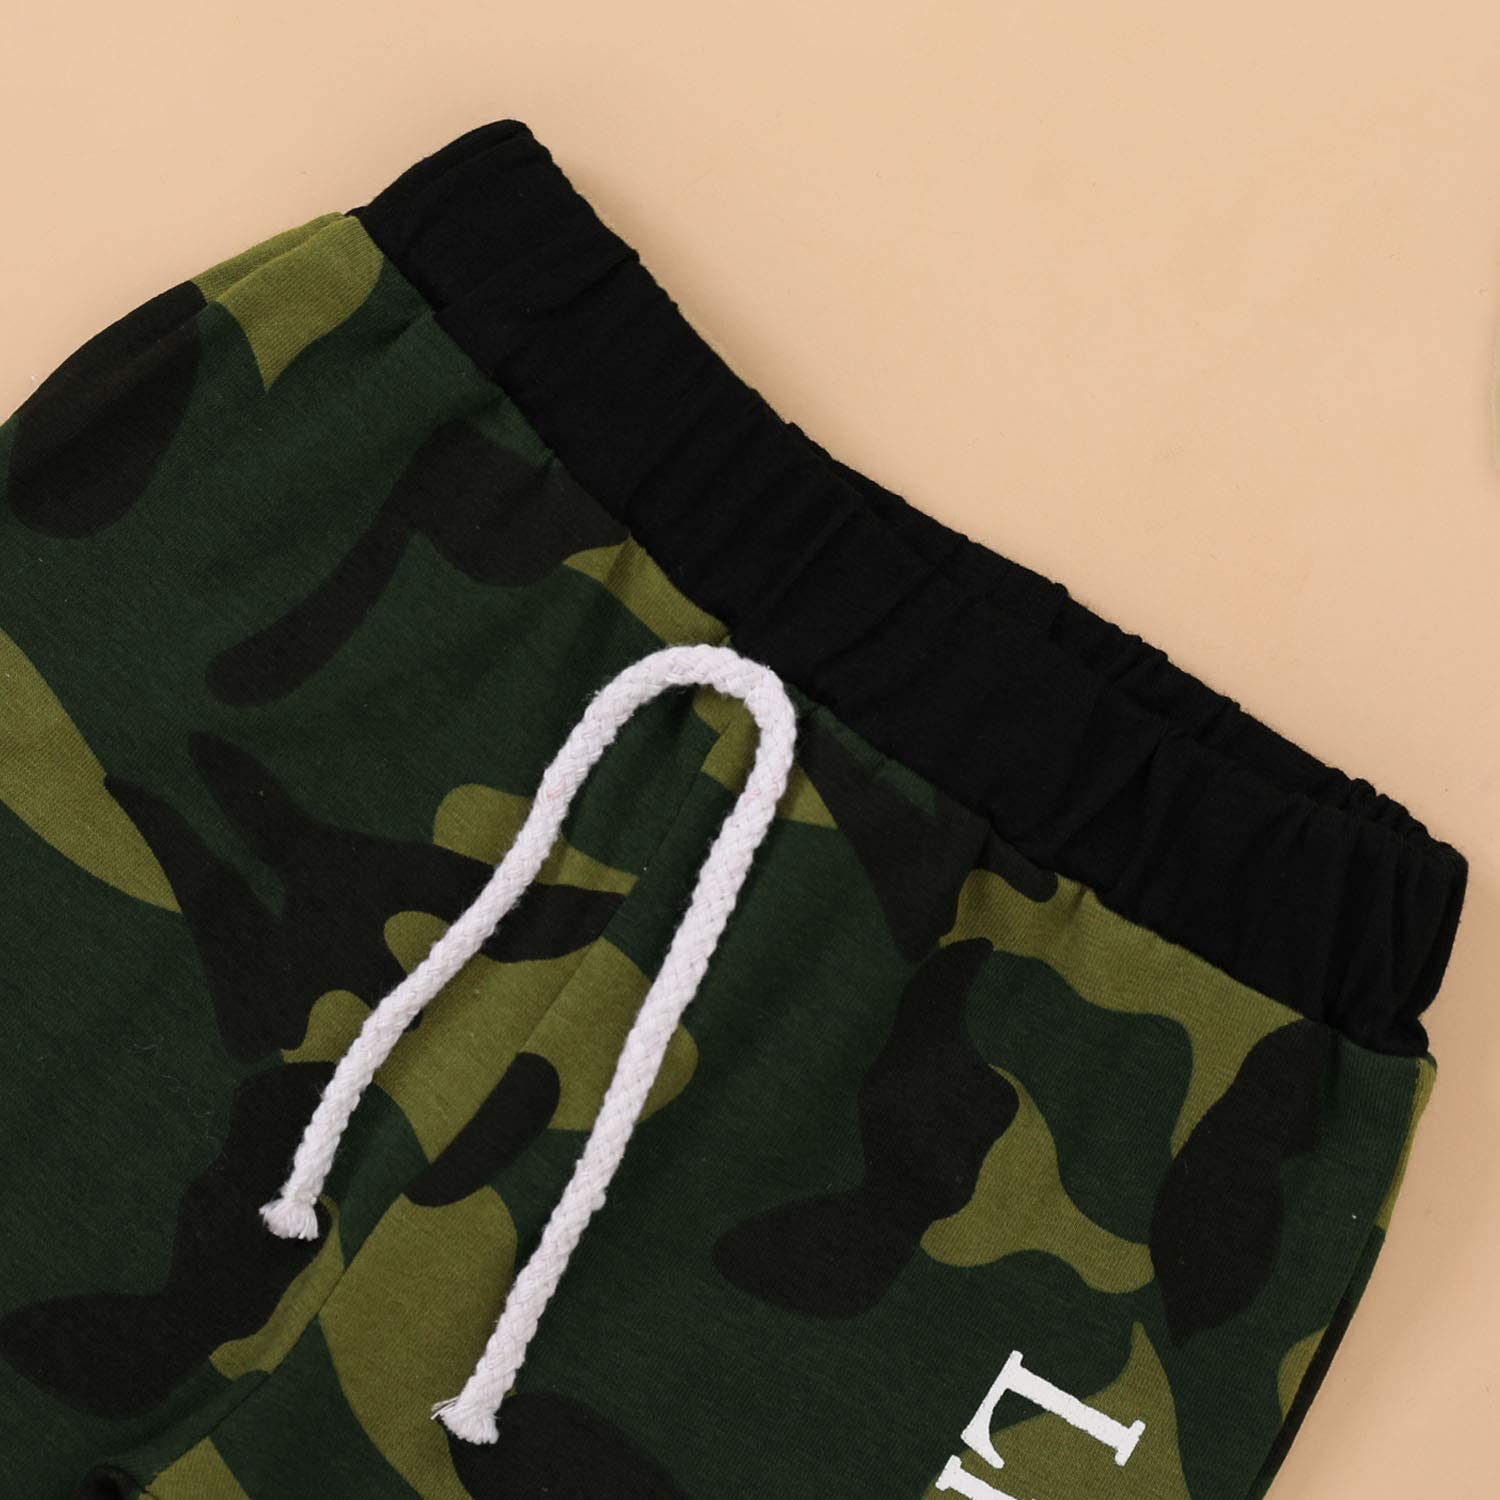 Baby Boy Brother Matching Outfits Little Big Brother Romper Top+Camouflage Pants+Hat 3Pcs Clothes